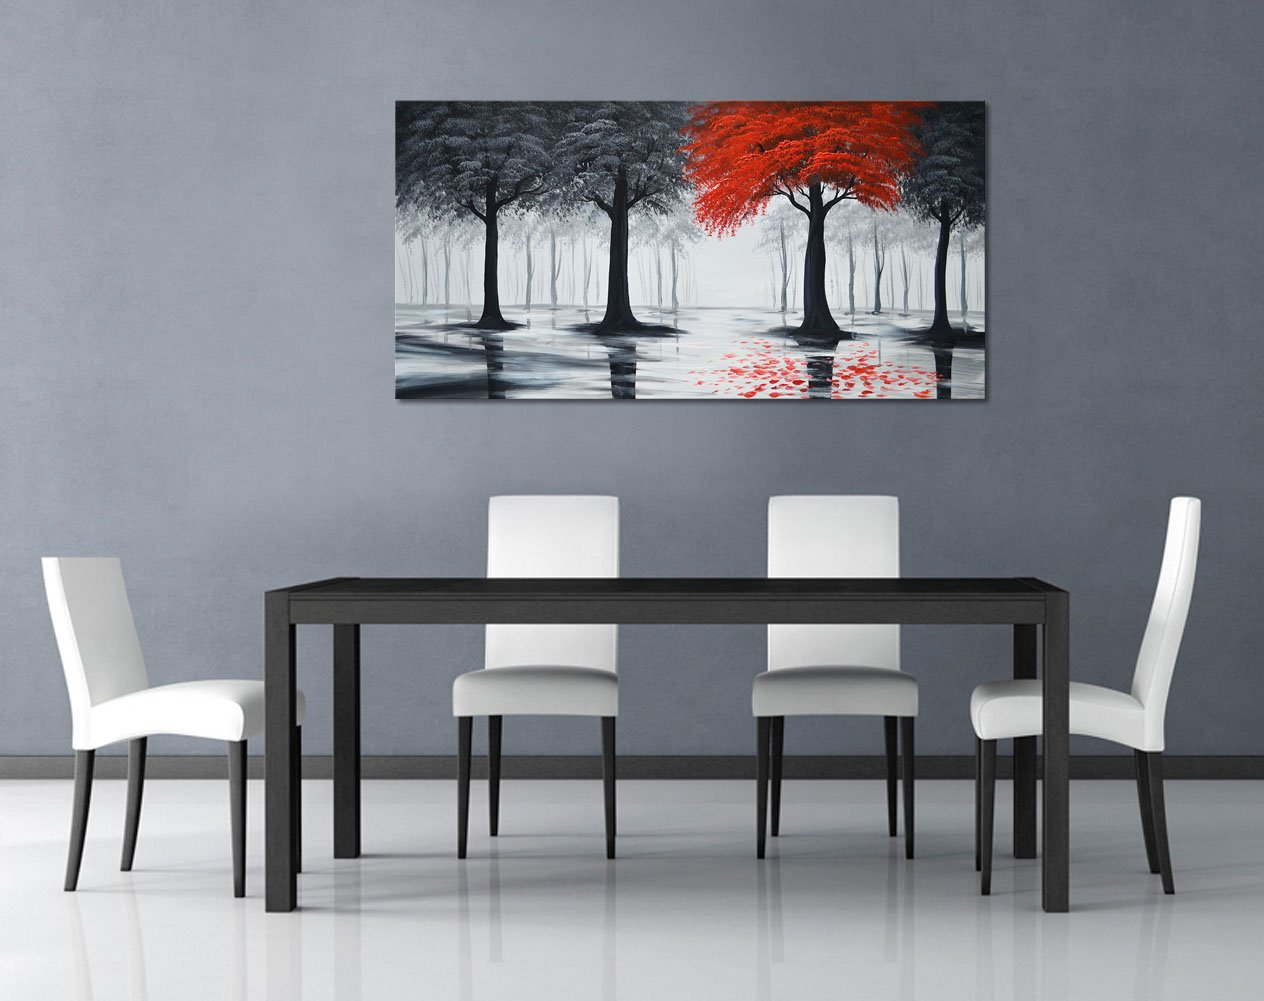 Everfun Art Hand Painted Large Black and Red Forest Oil Painting On Canvas Modern Contemporary Landscape Wall Art Stretched Abstract Tree Artwork for Living Room Framed Ready to Hang ( 60 x 30 inch)